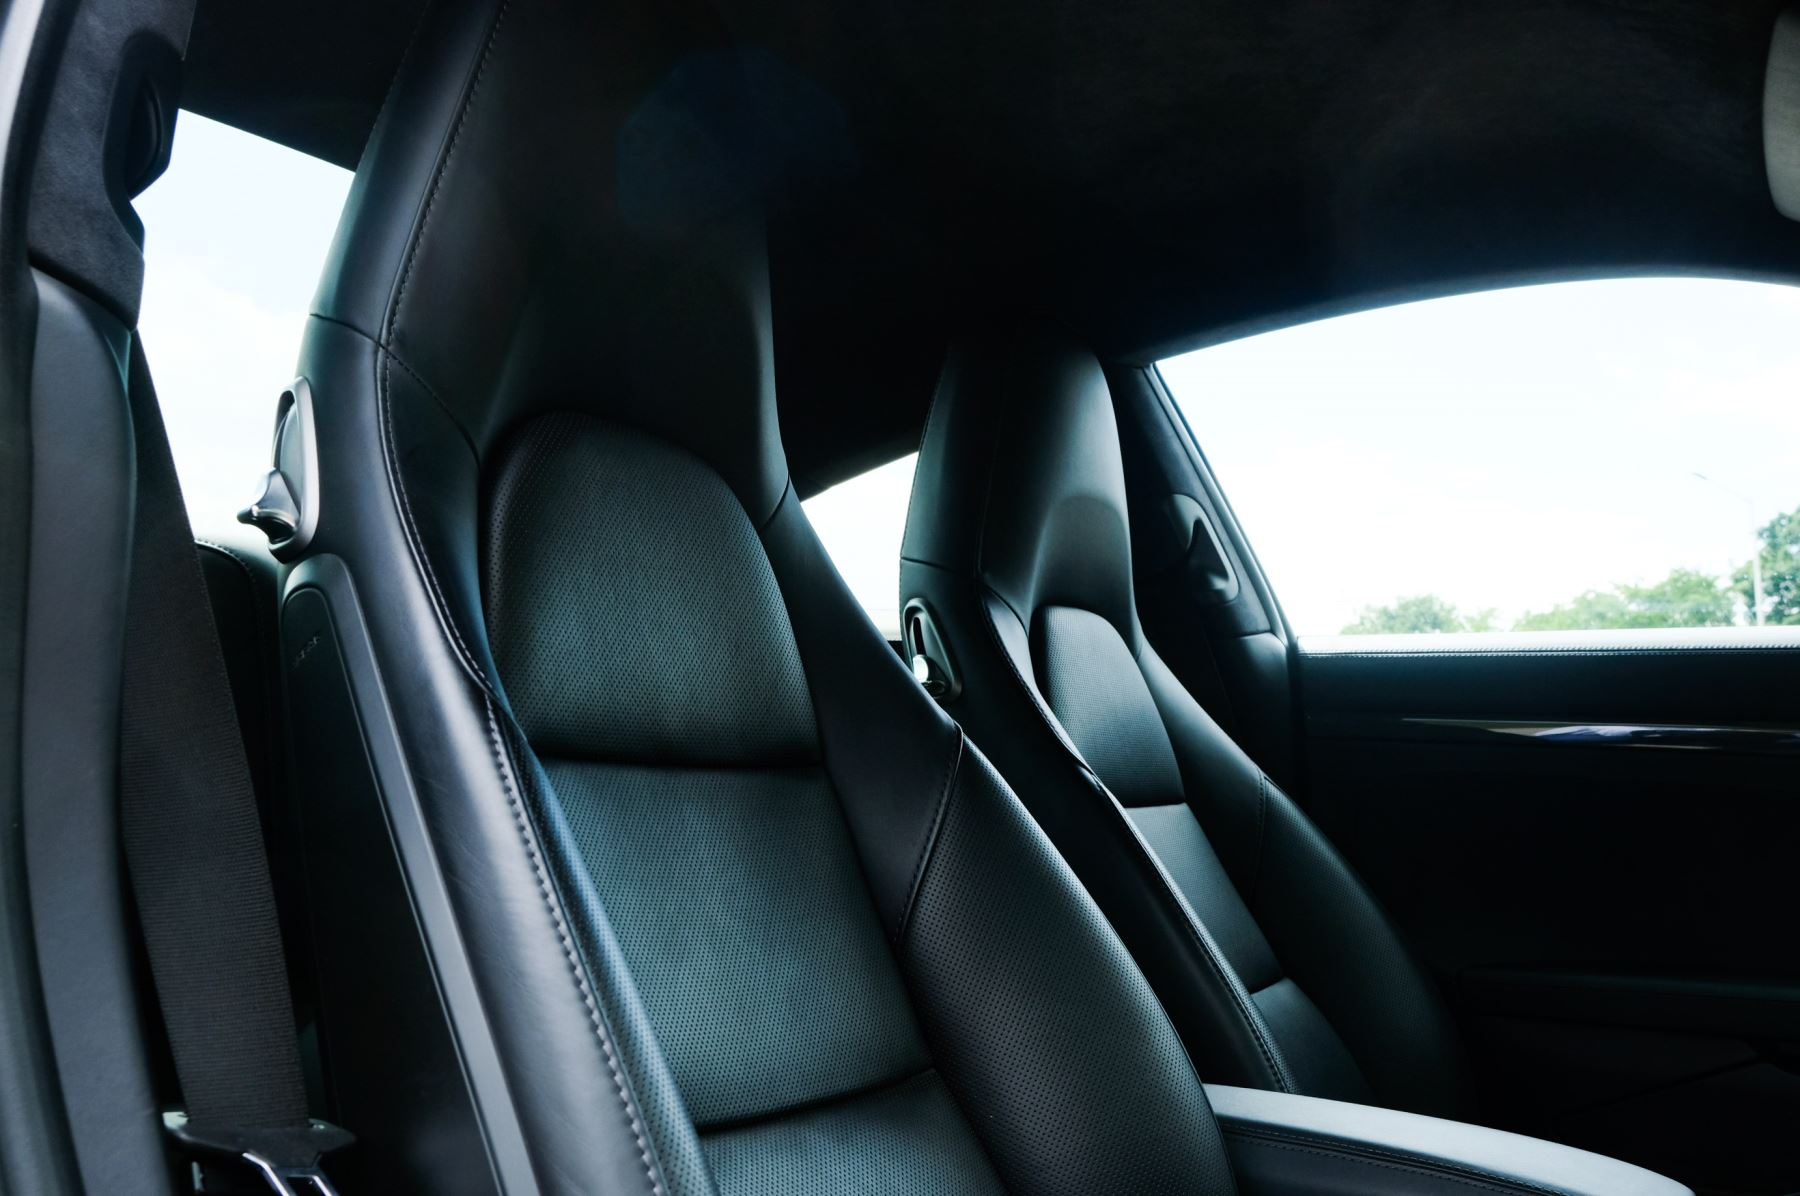 Porsche 911 PDK - Carbon interior package - Privacy Glass - 20 inch Sport Classic wheels image 11